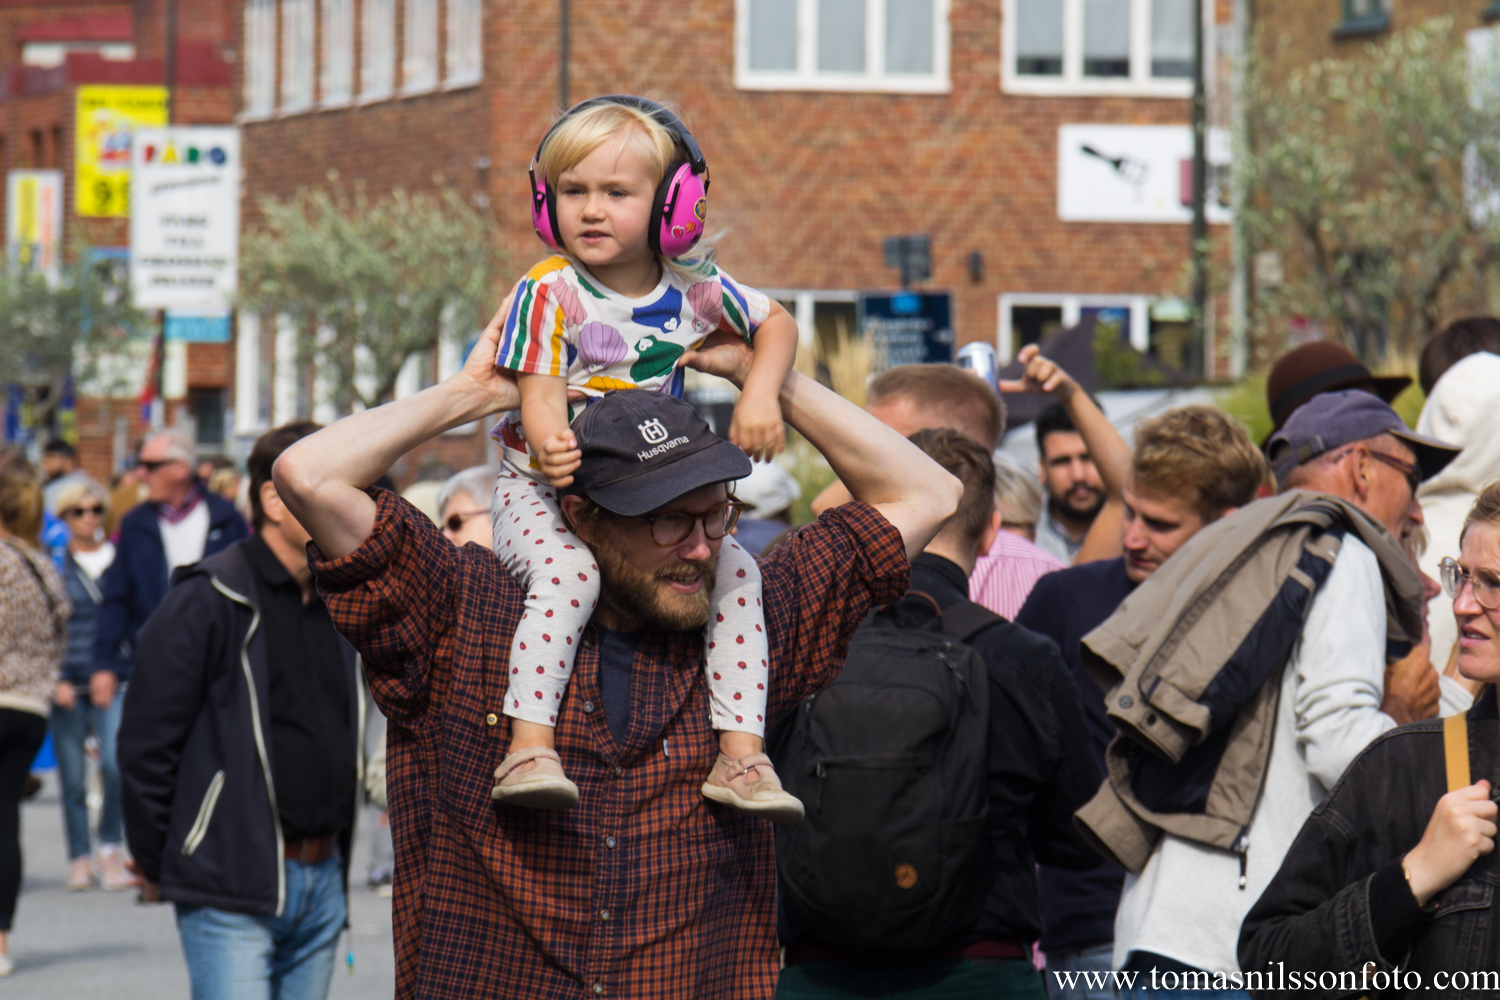 Good thing this kid's ears (like many others her age) are safe at the festival!